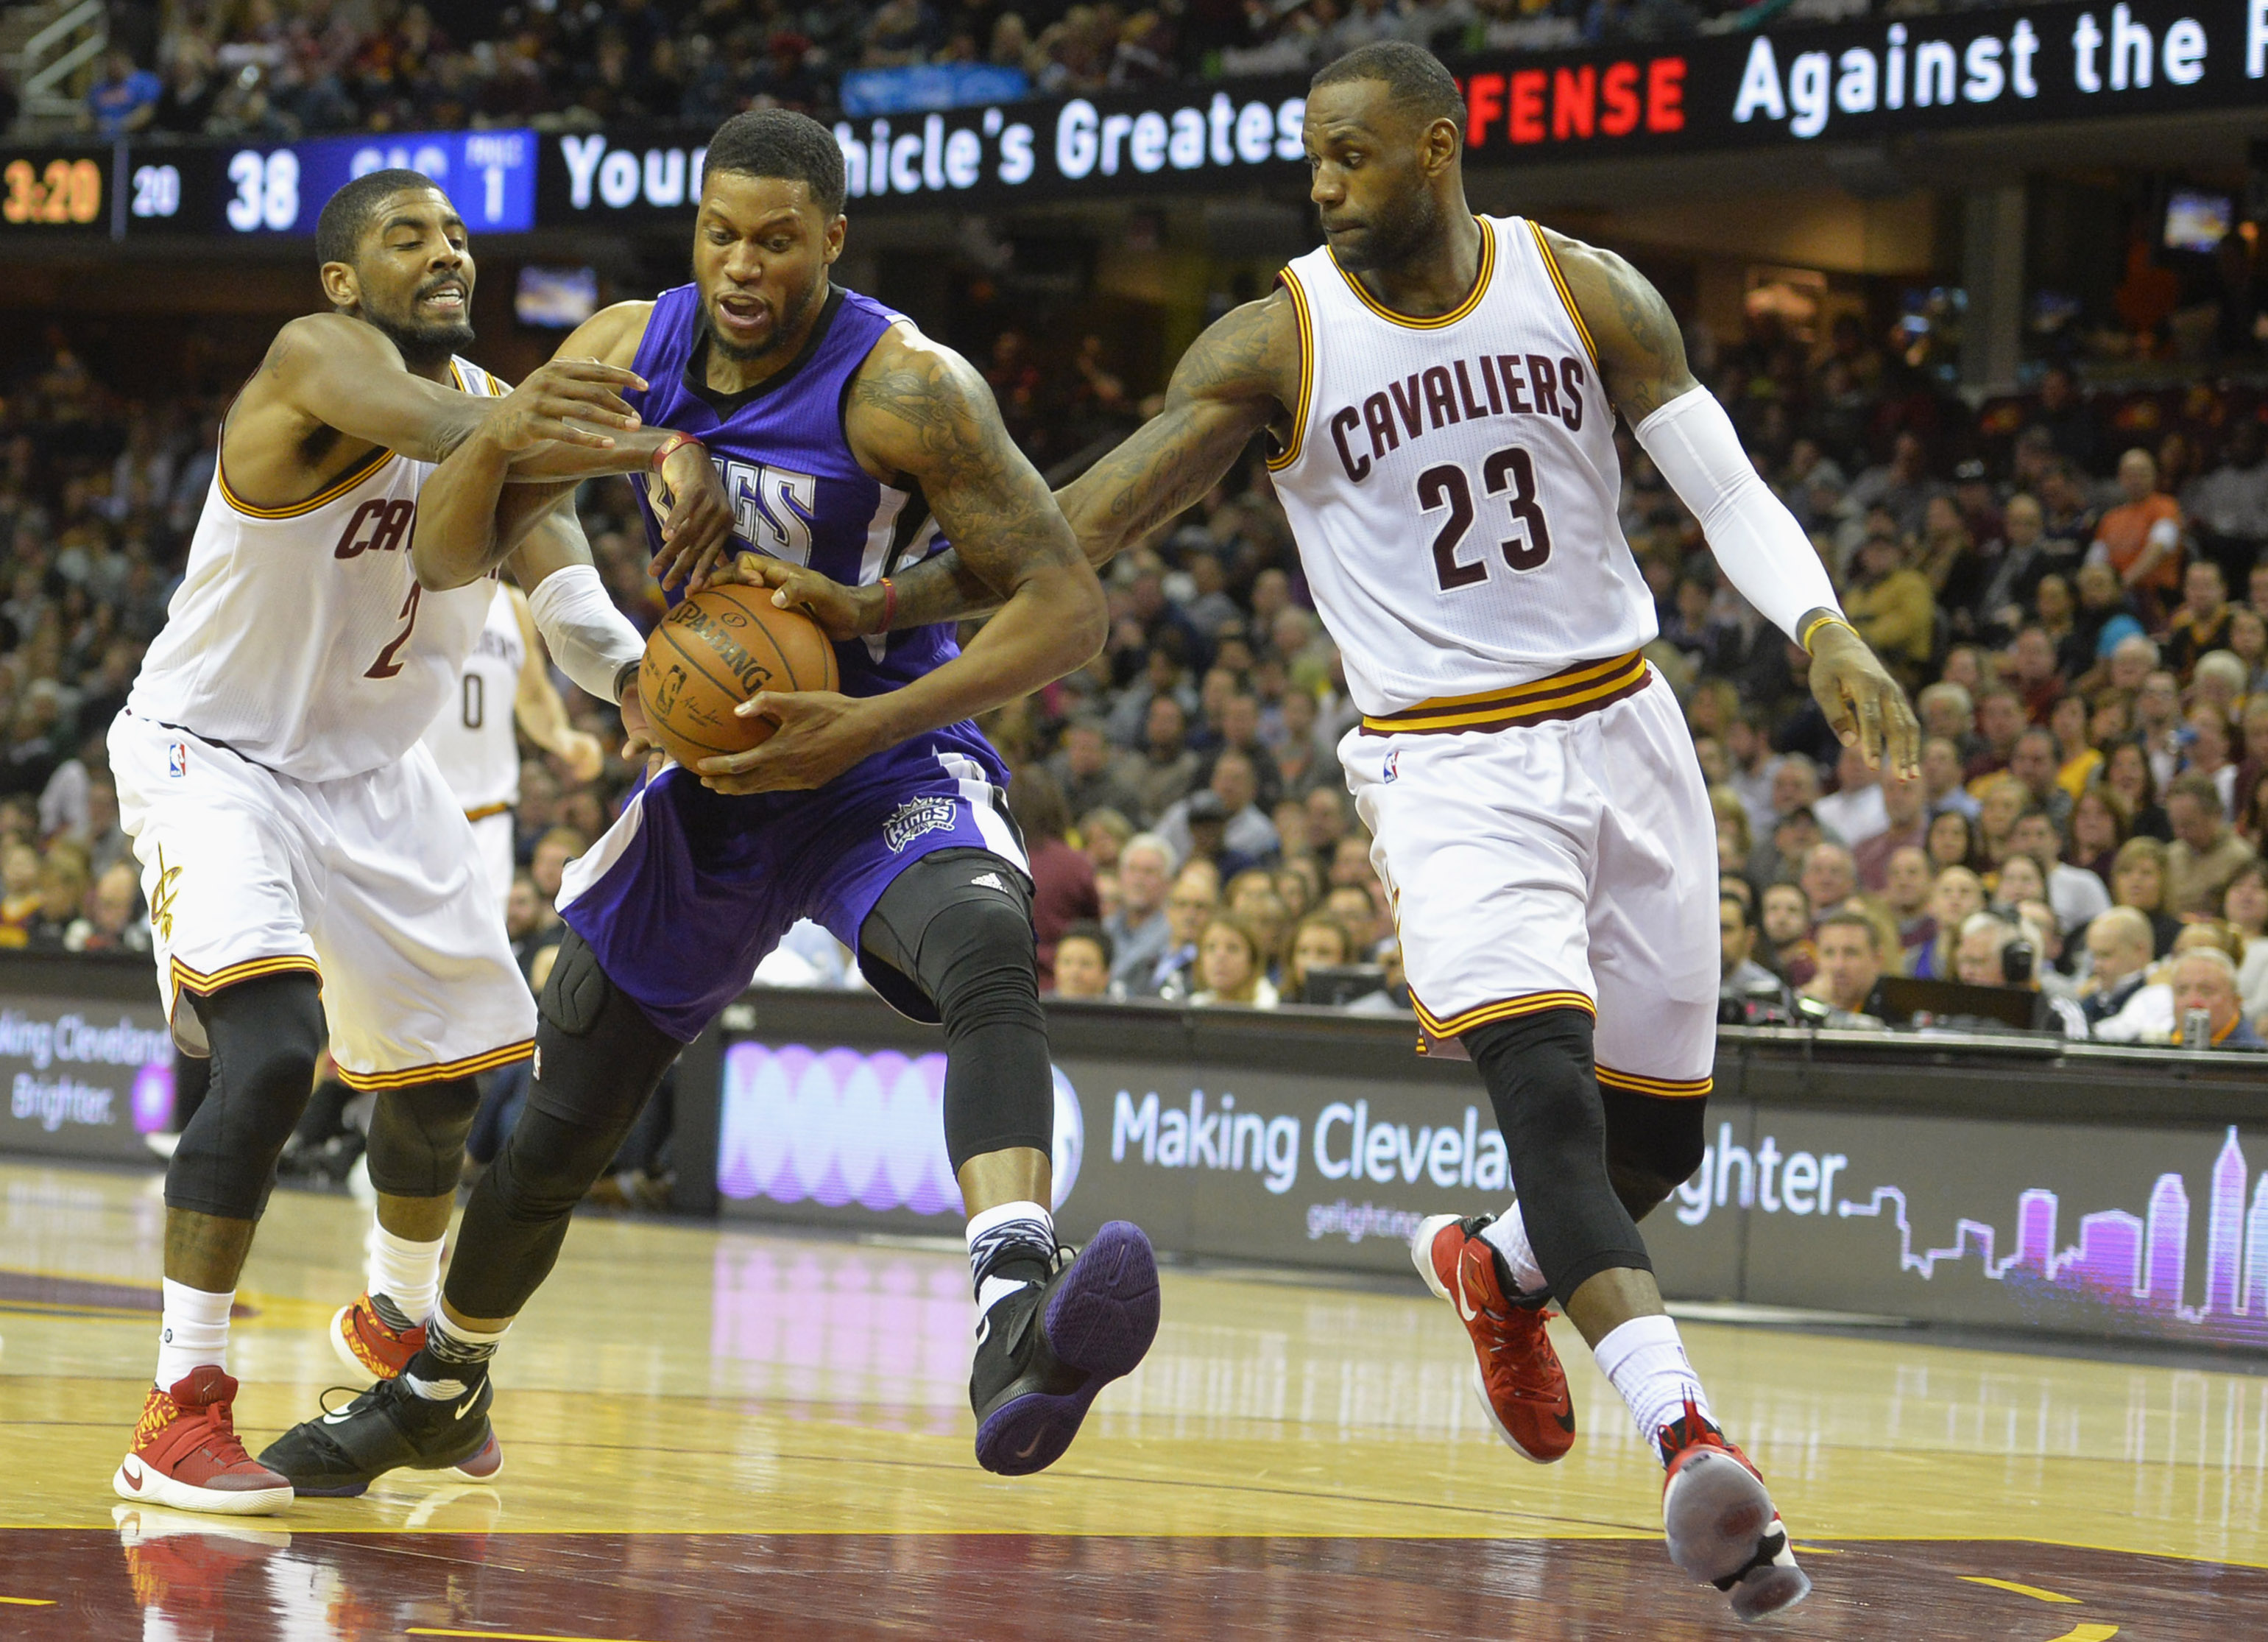 9103271-nba-sacramento-kings-at-cleveland-cavaliers